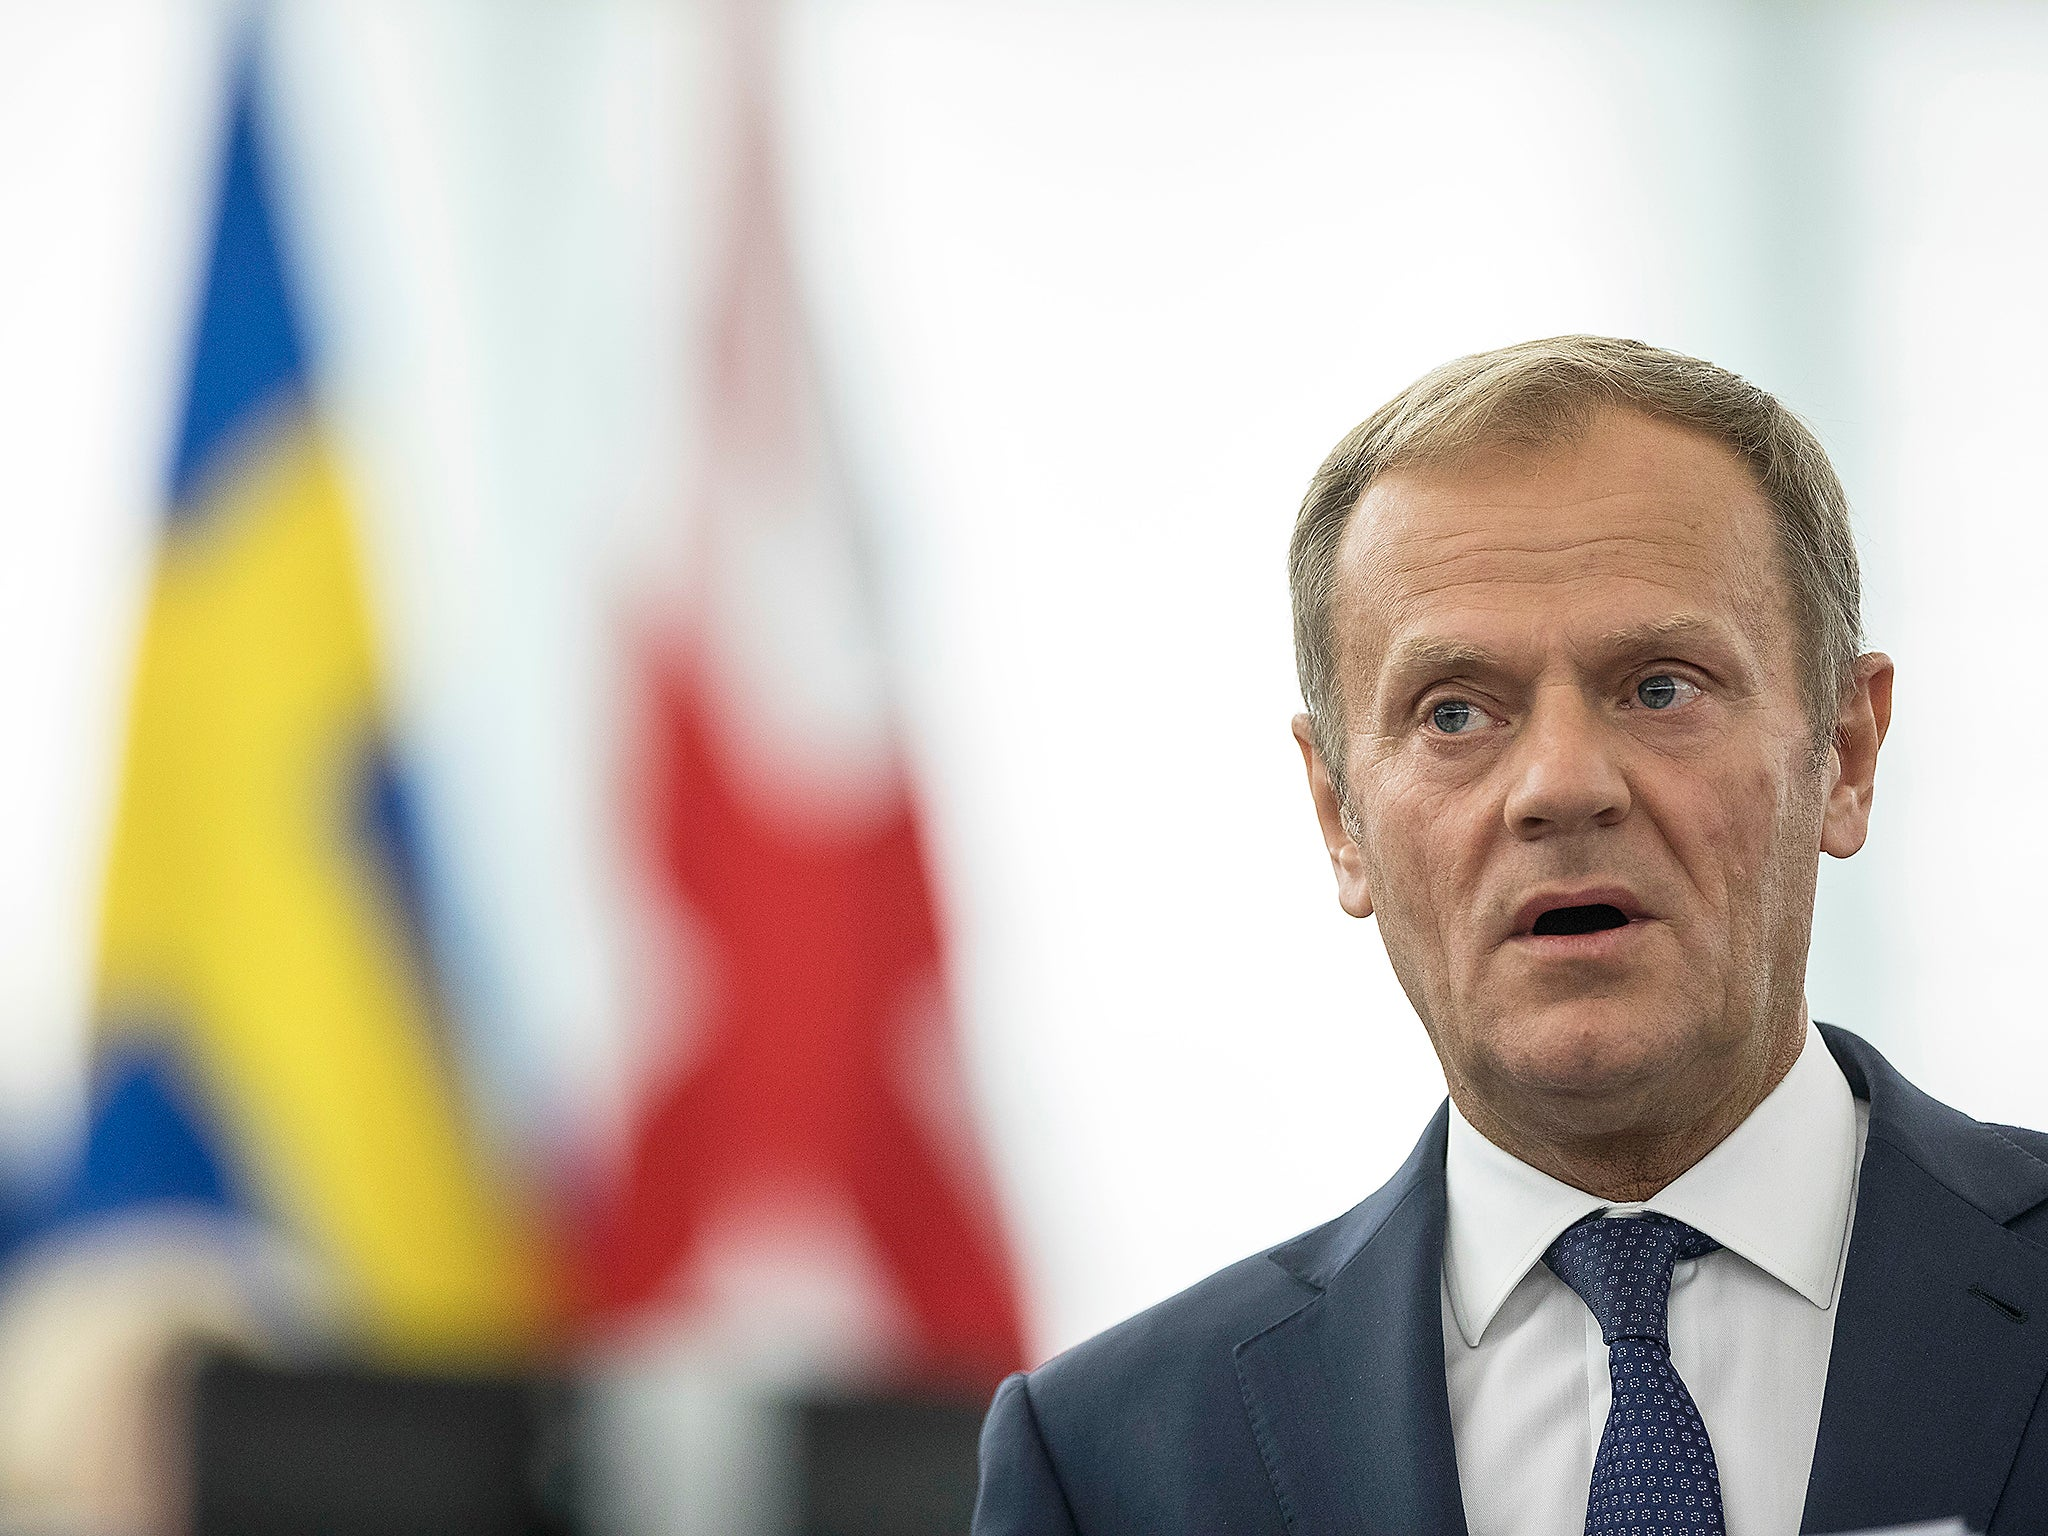 Brexit talks target delayed by months, EU president says